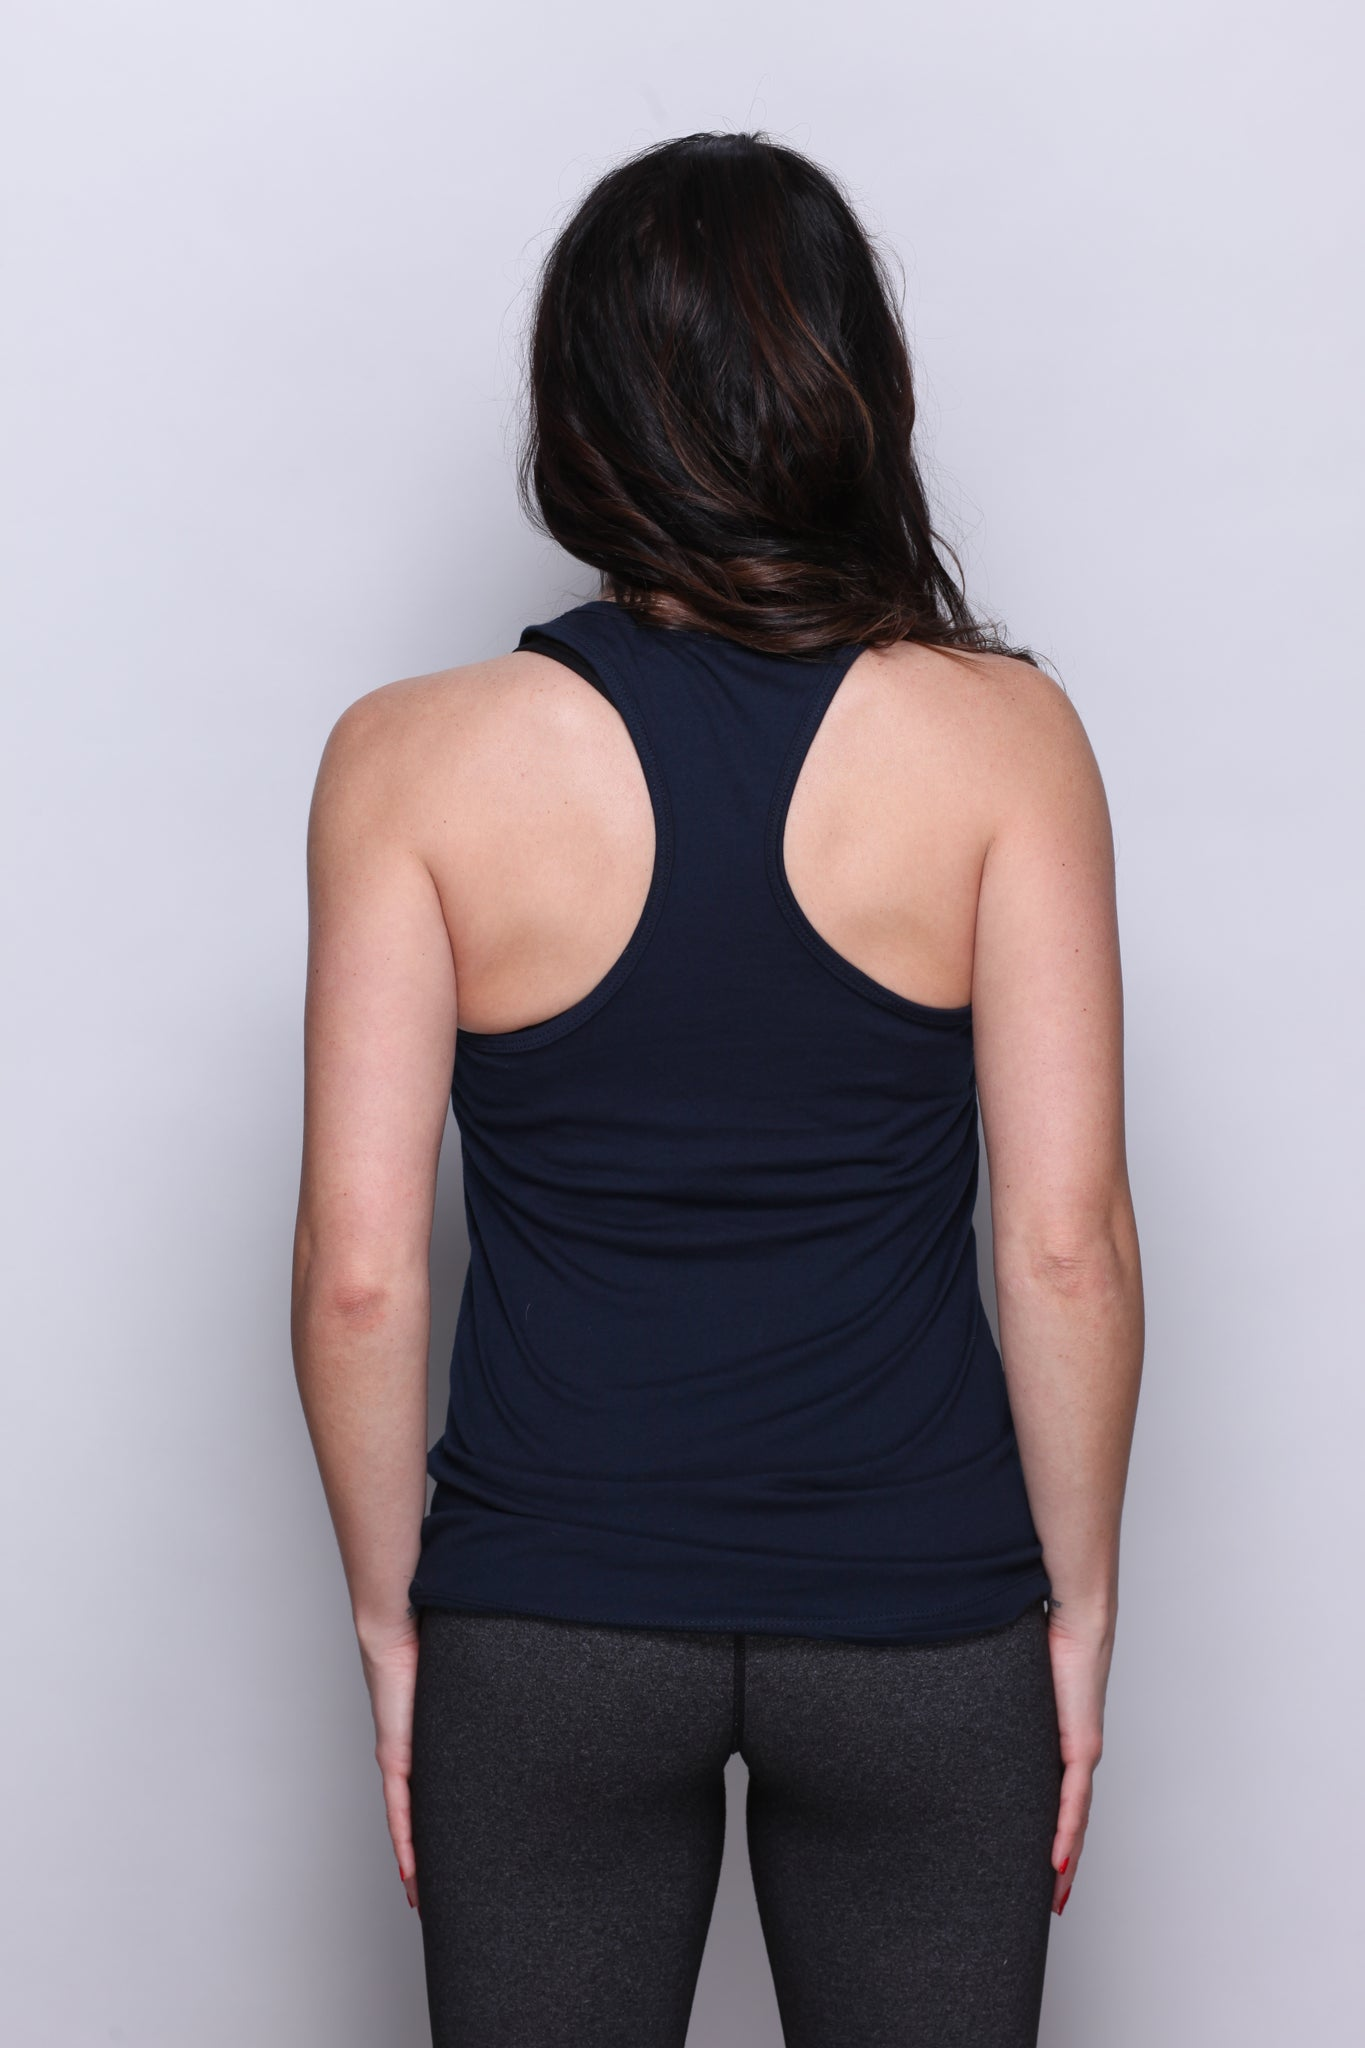 LIMITED RELEASE - THKST Statement Racerback Tank - Navy/White